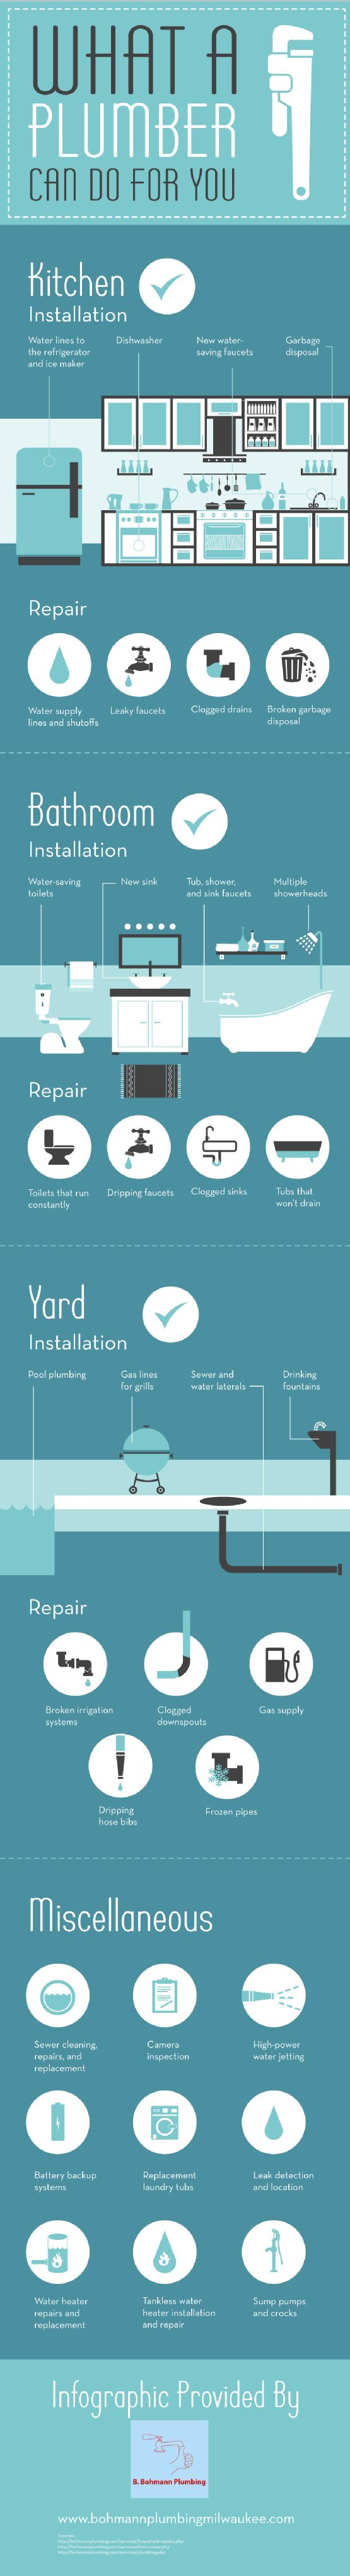 Did you know that your plumber can help with installations and repairs in your yard? He or she can handle pool plumbing, gas lines for grills, and dri